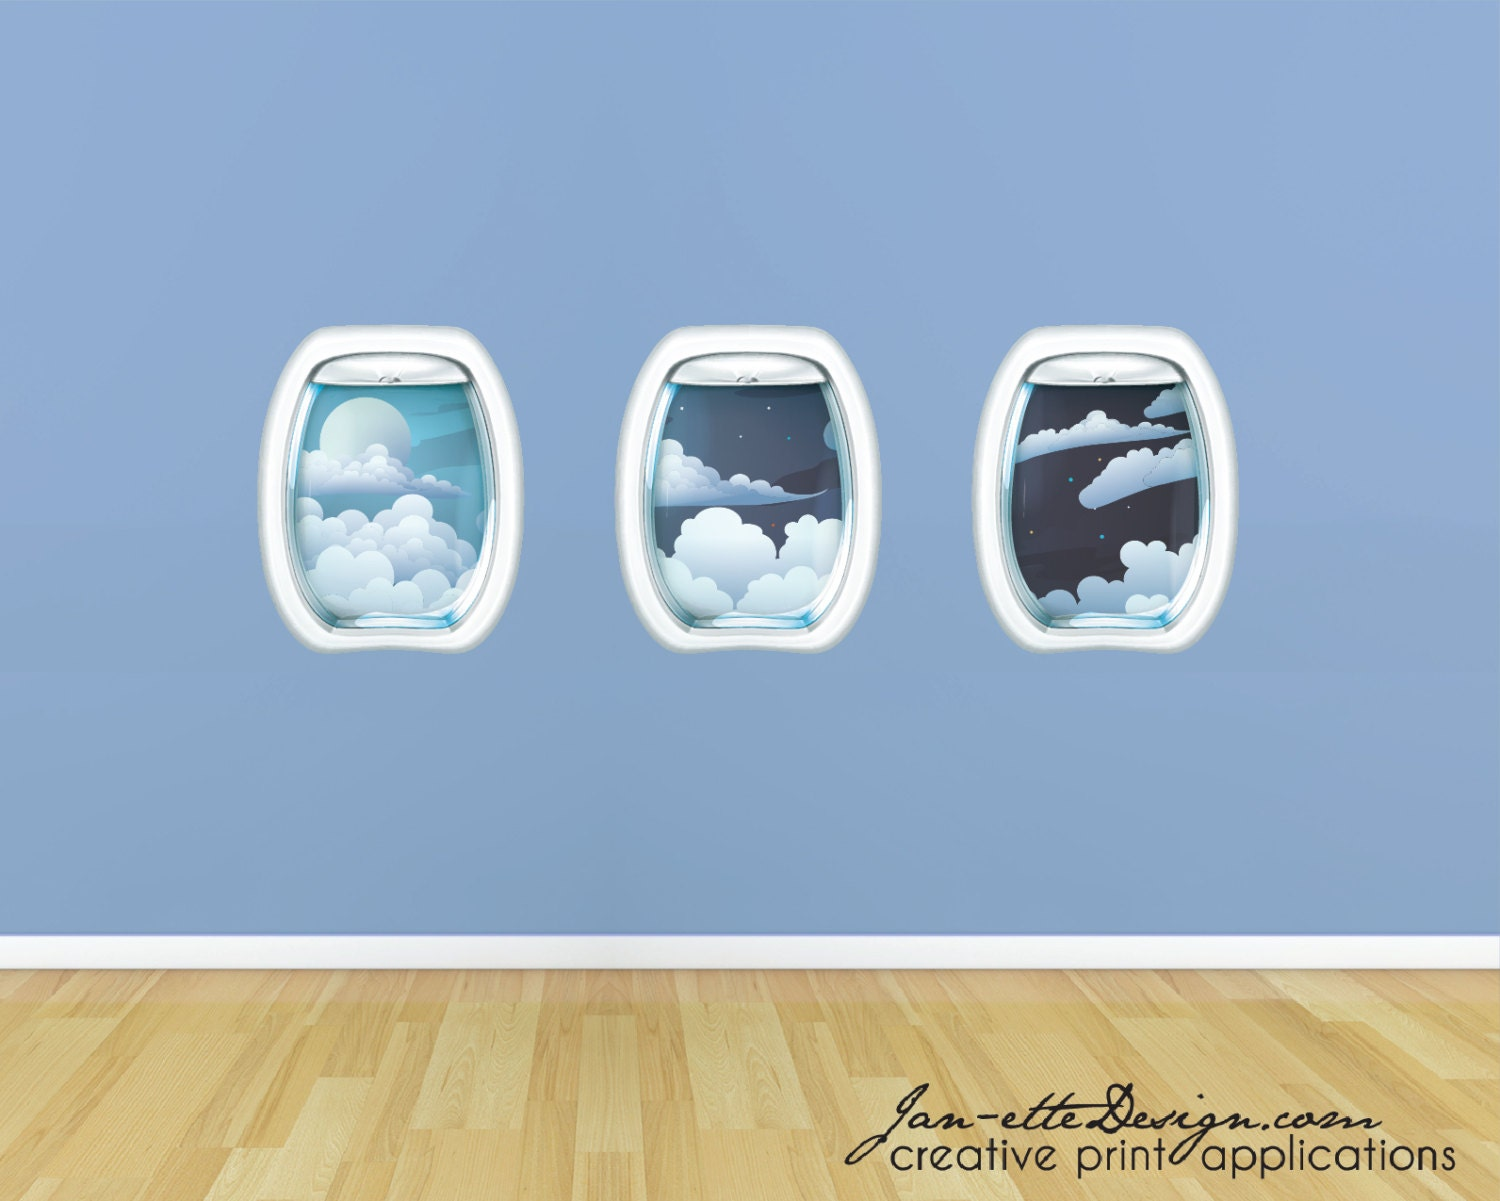 Aeroplane Wall Stickers Gallery - home design wall stickers